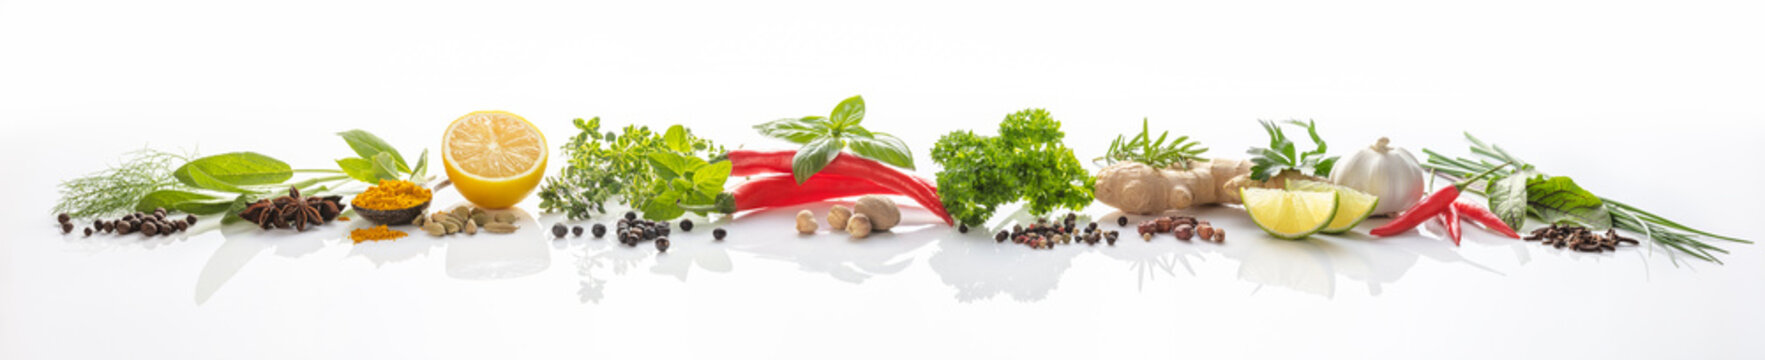 Composition of various herbs and spices on white background